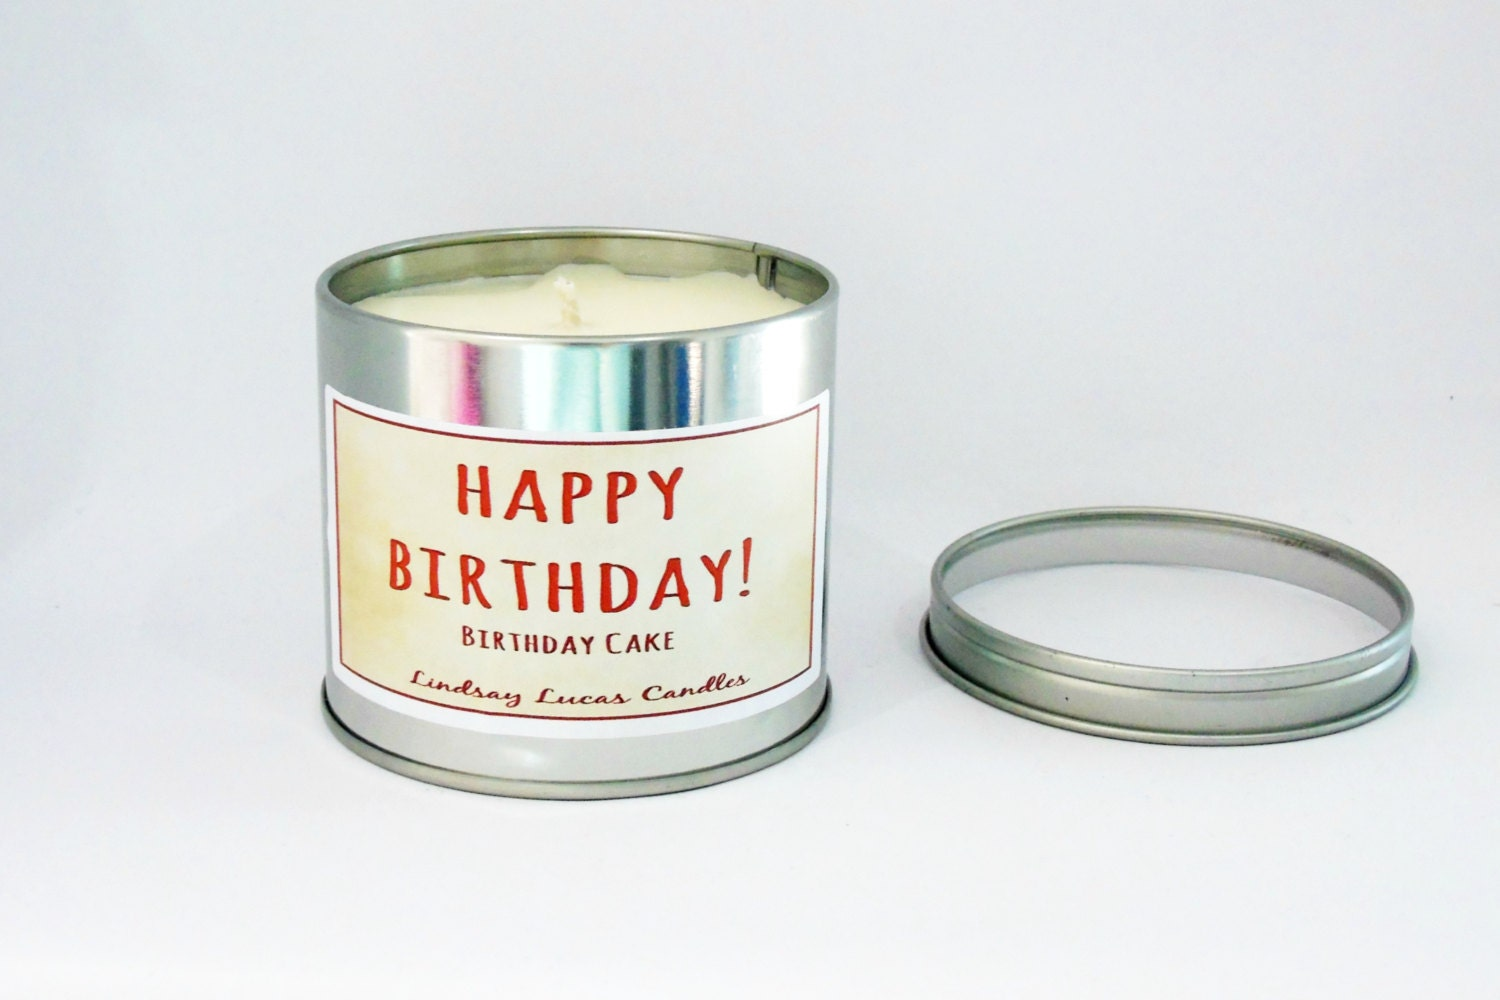 Birthday Cake Candle Cake Scented Candle Tin Candle Scented